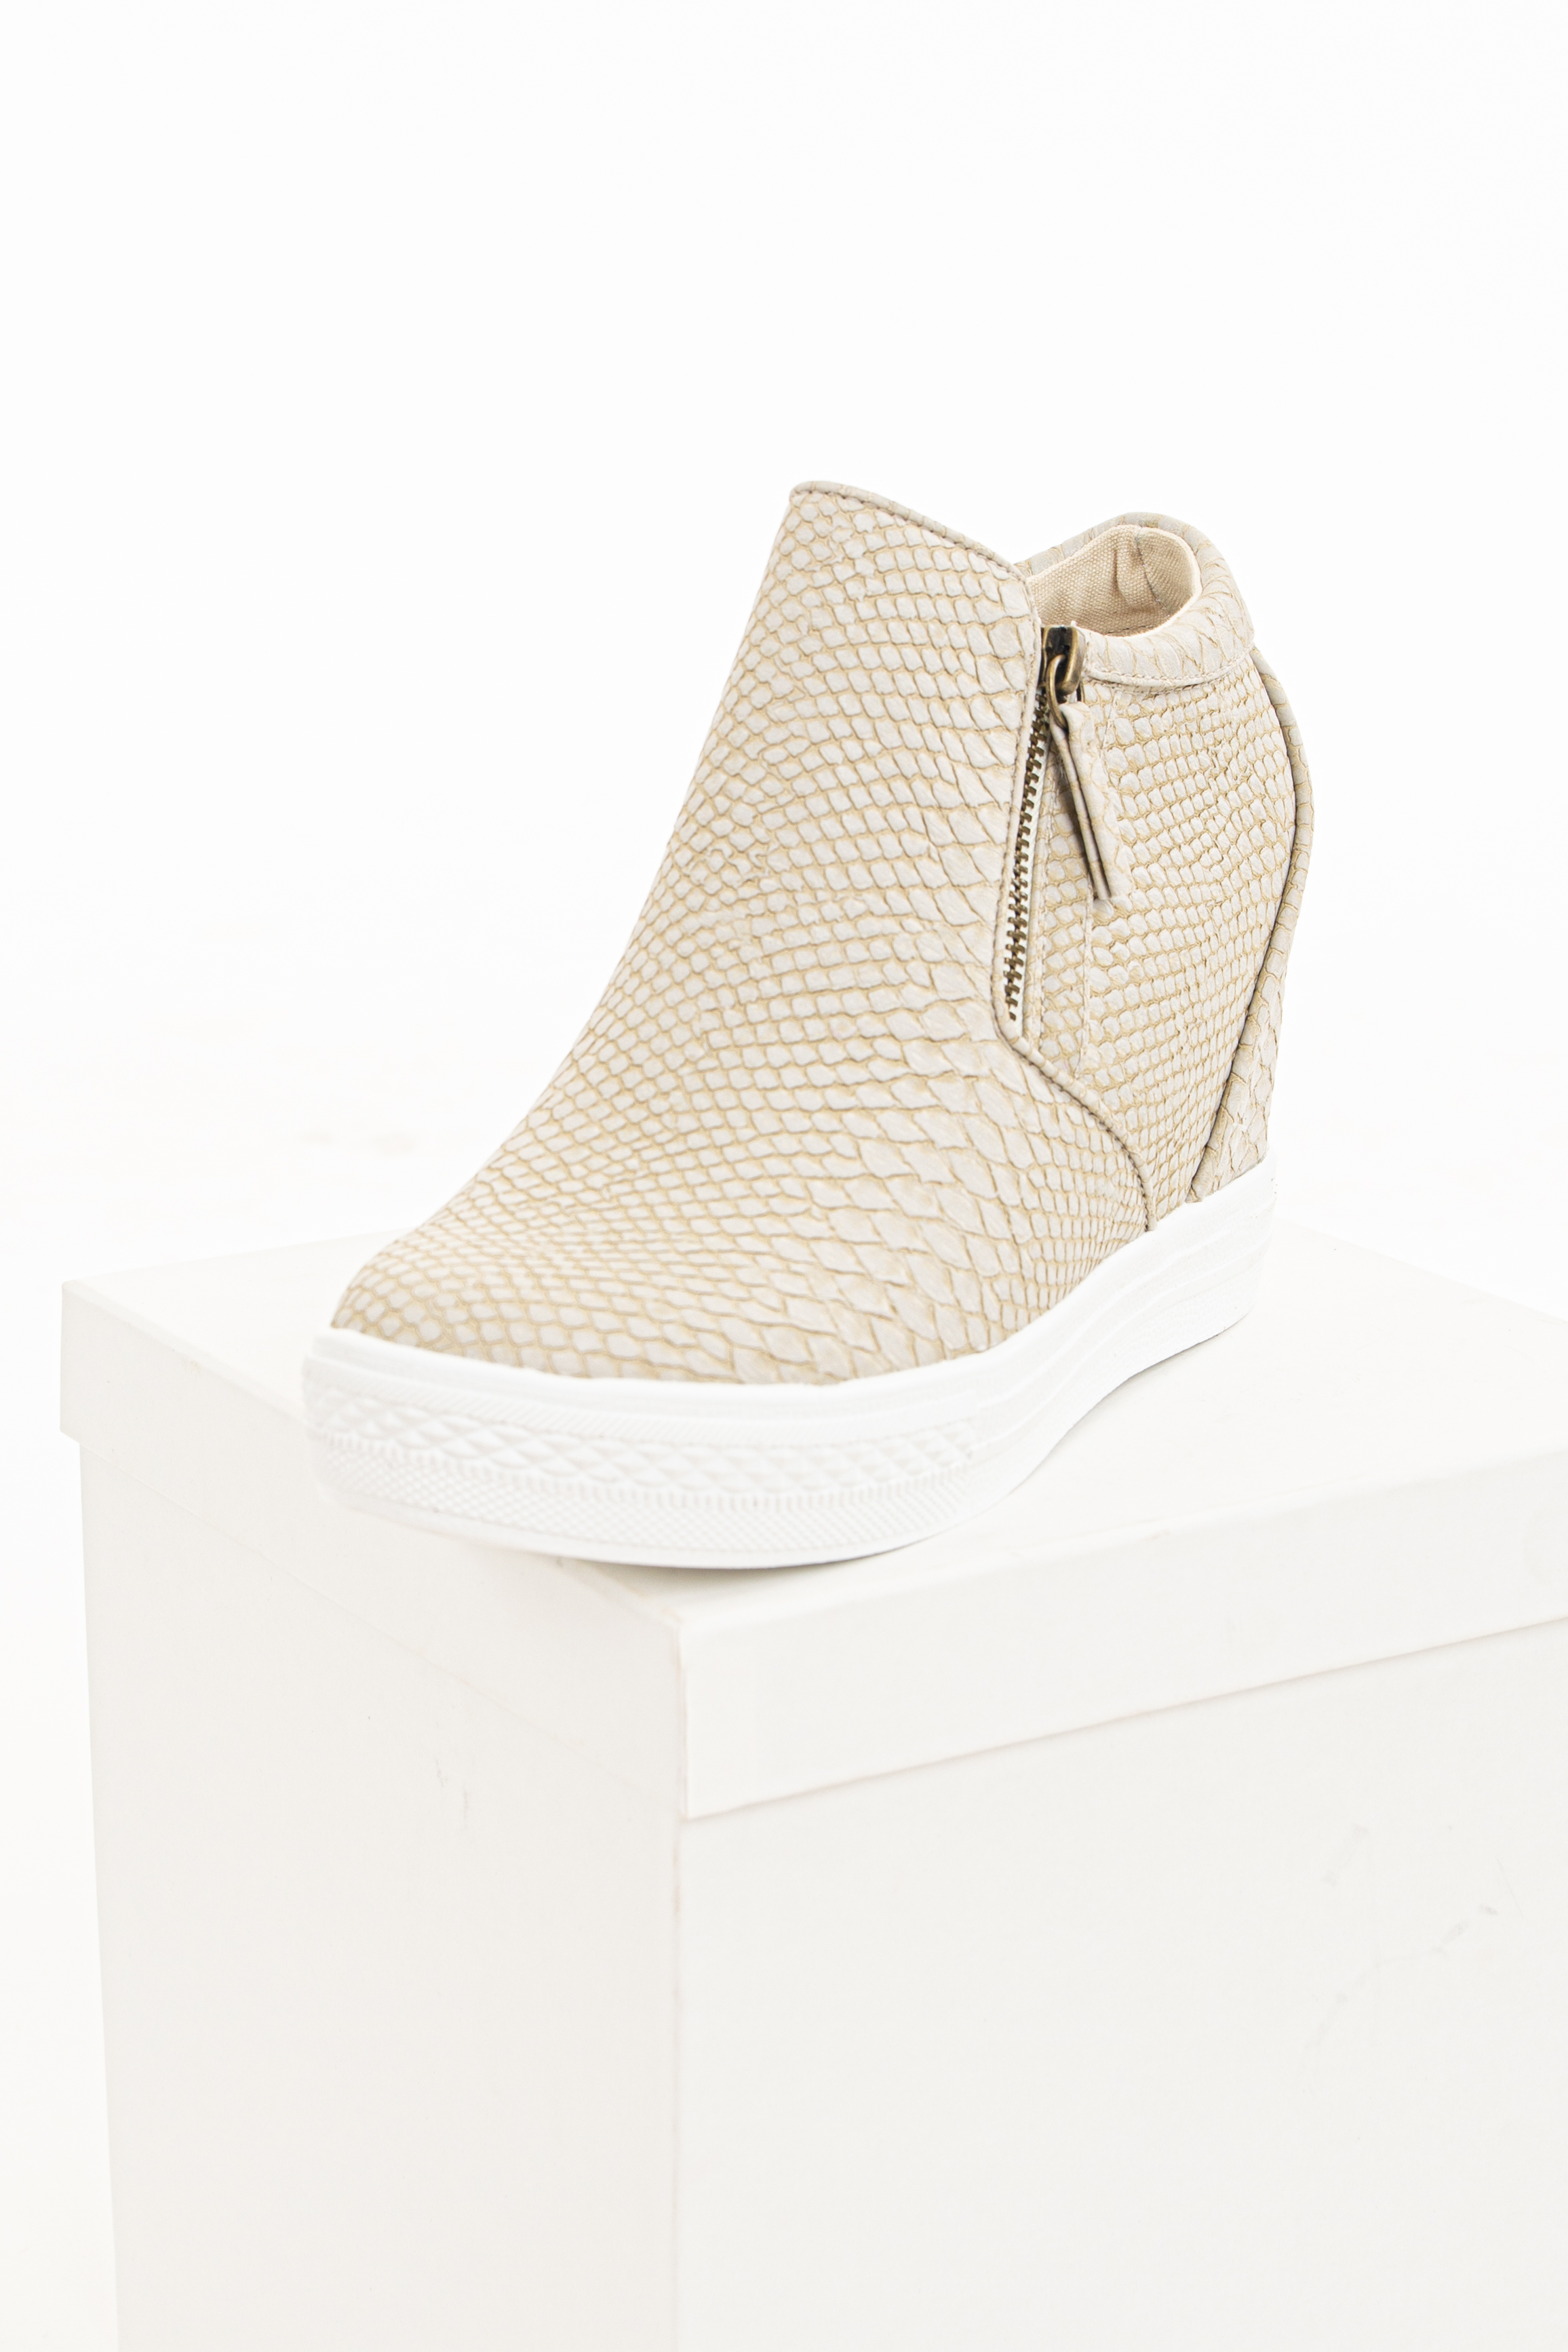 Beige Snakeskin Print Textured Wedge Sneaker with Zippers